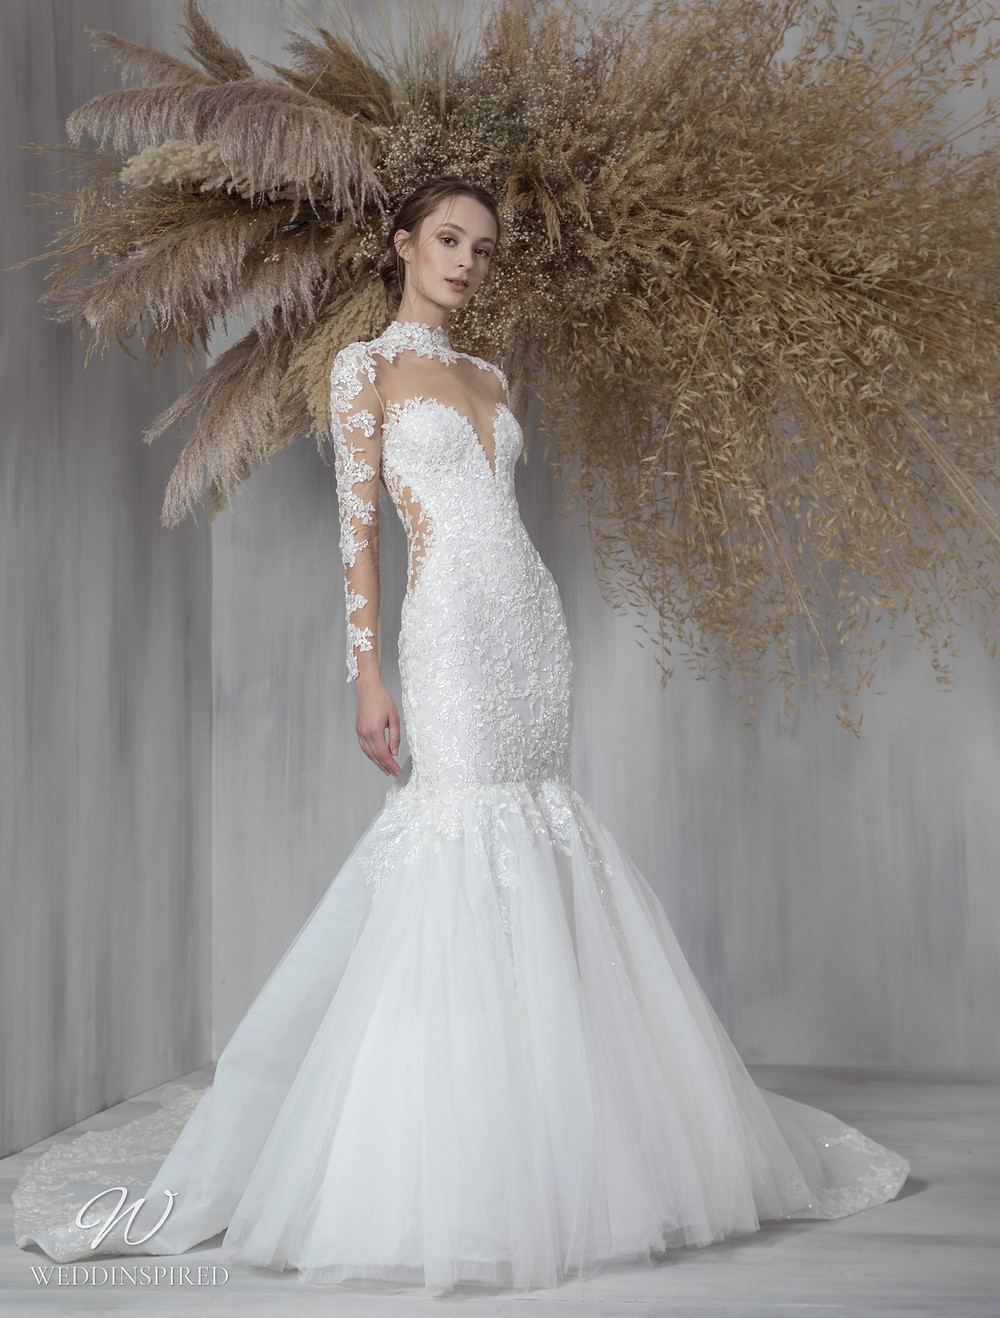 A Tony Ward 2021 lace and tulle mermaid wedding dress with long sleeves and an illusion bodice